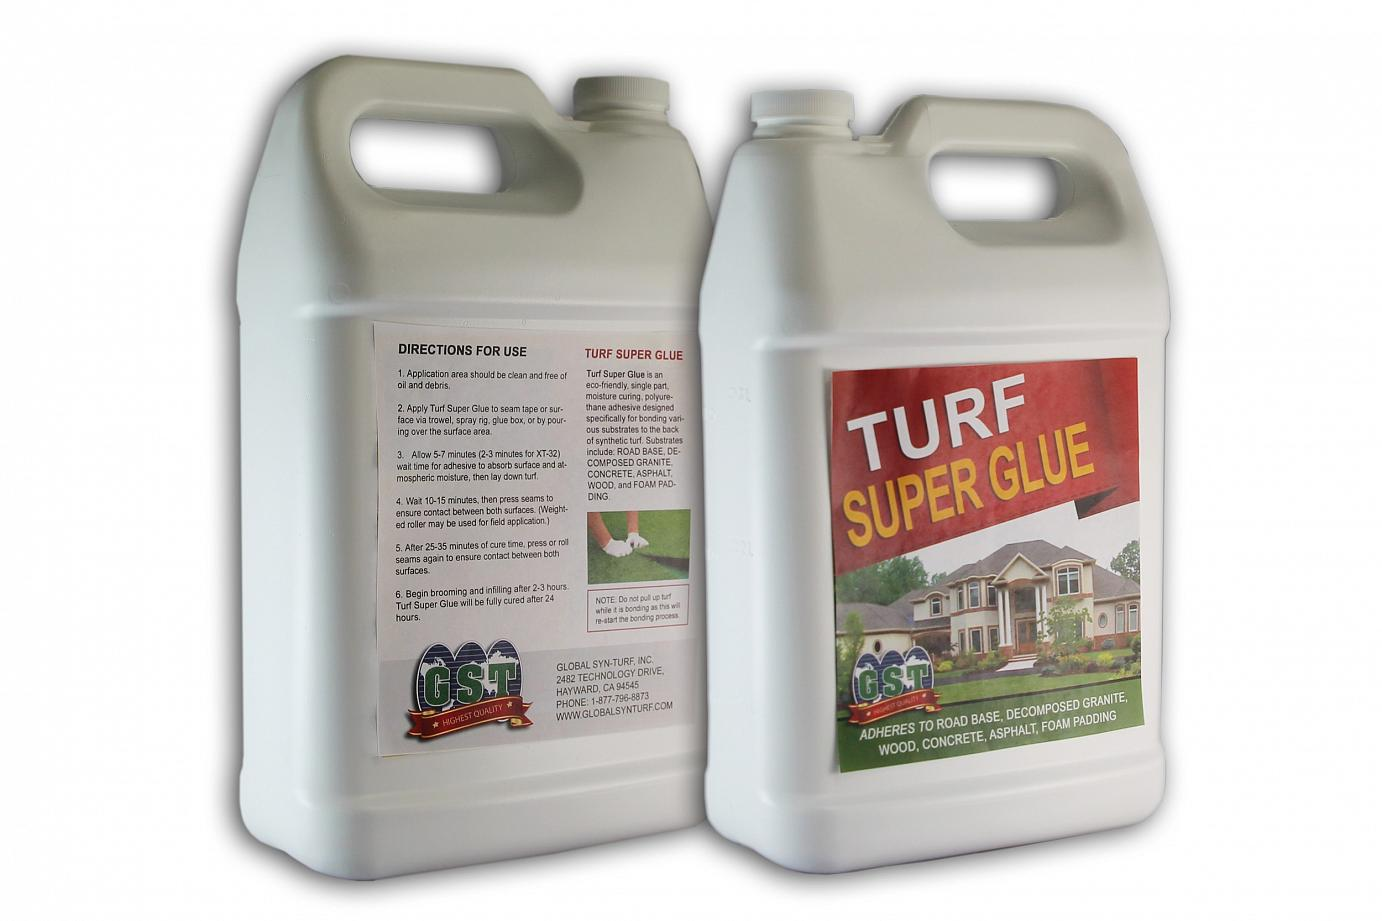 Turf Super Glue Artificial Grass San Antonio, Texas Synthetic Grass Tools Installation